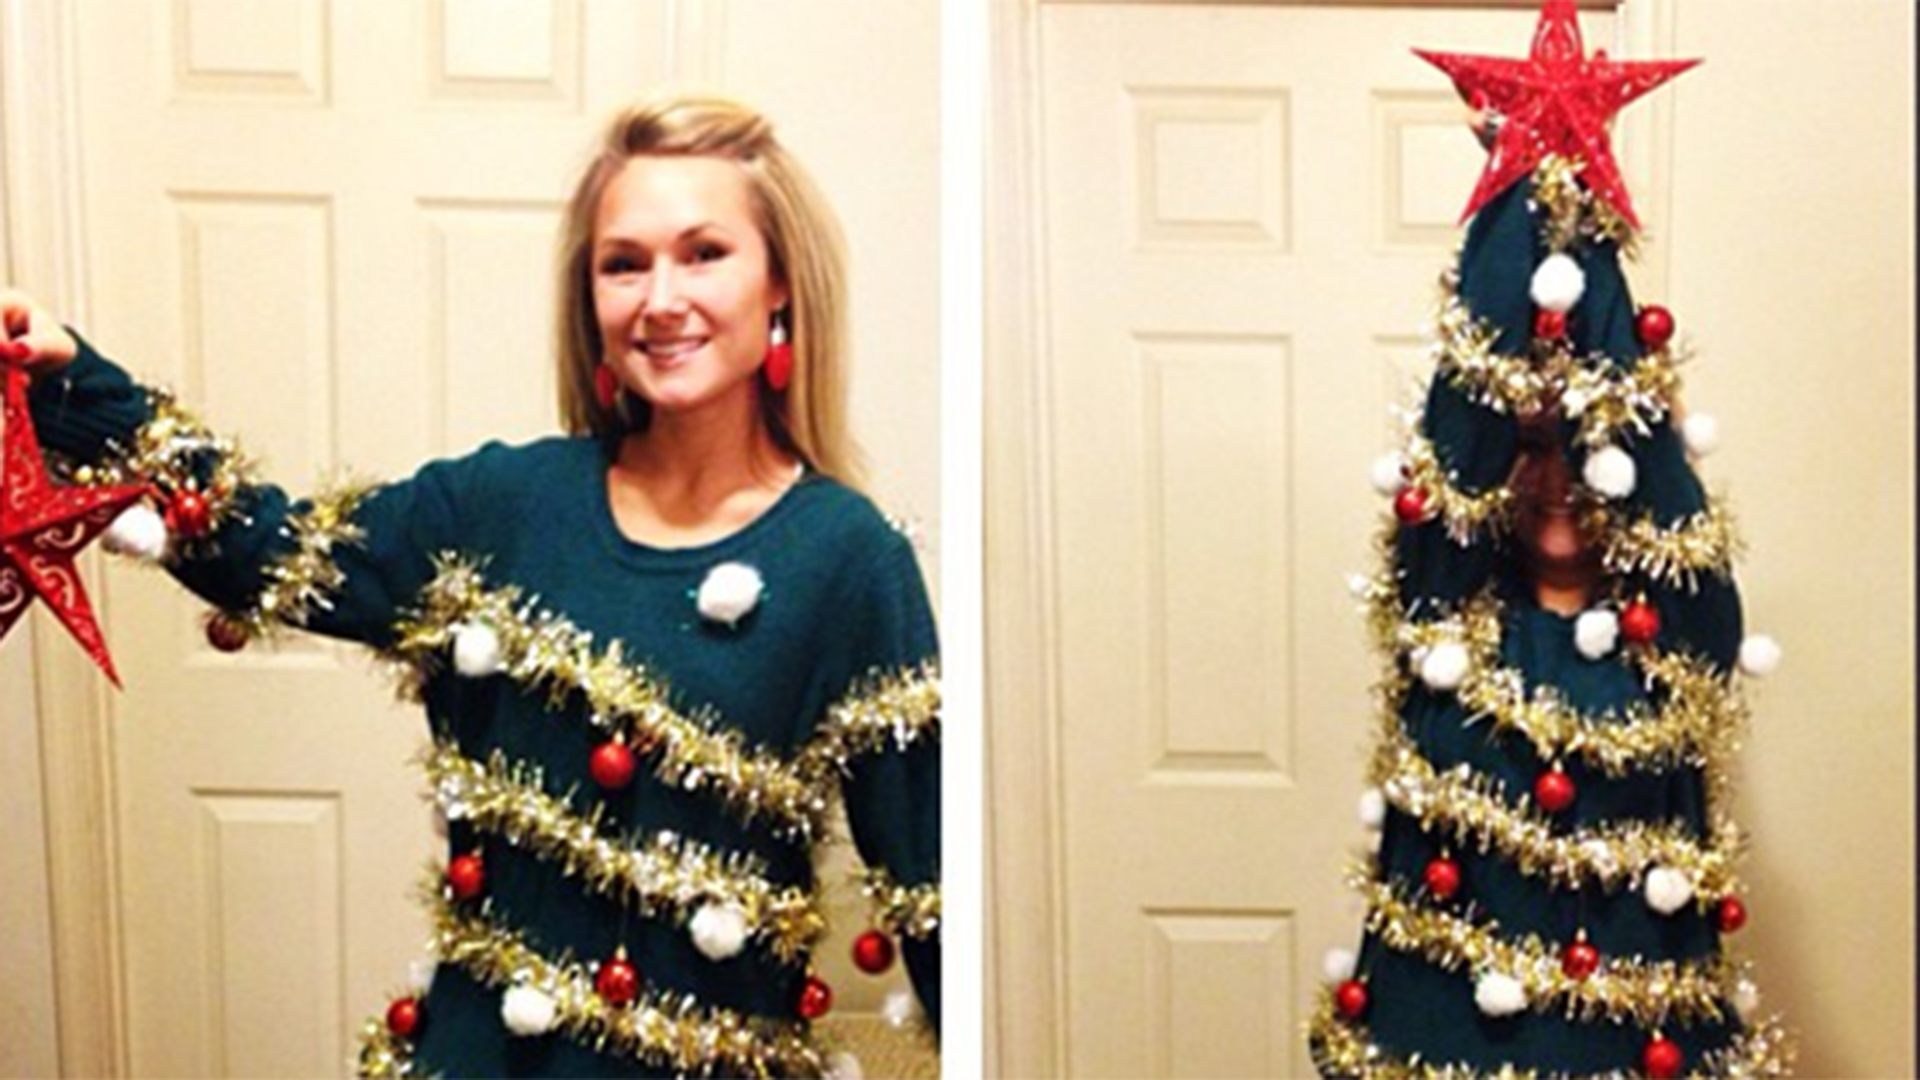 Flagrant Pregnant Diy Ugly Sweater Party Decorations Ugly Sweater Today Tease 160211 2ad62c119cfcefb6535fad0ad0bc0530 Diy Ugly Sweater inspiration Diy Ugly Christmas Sweater